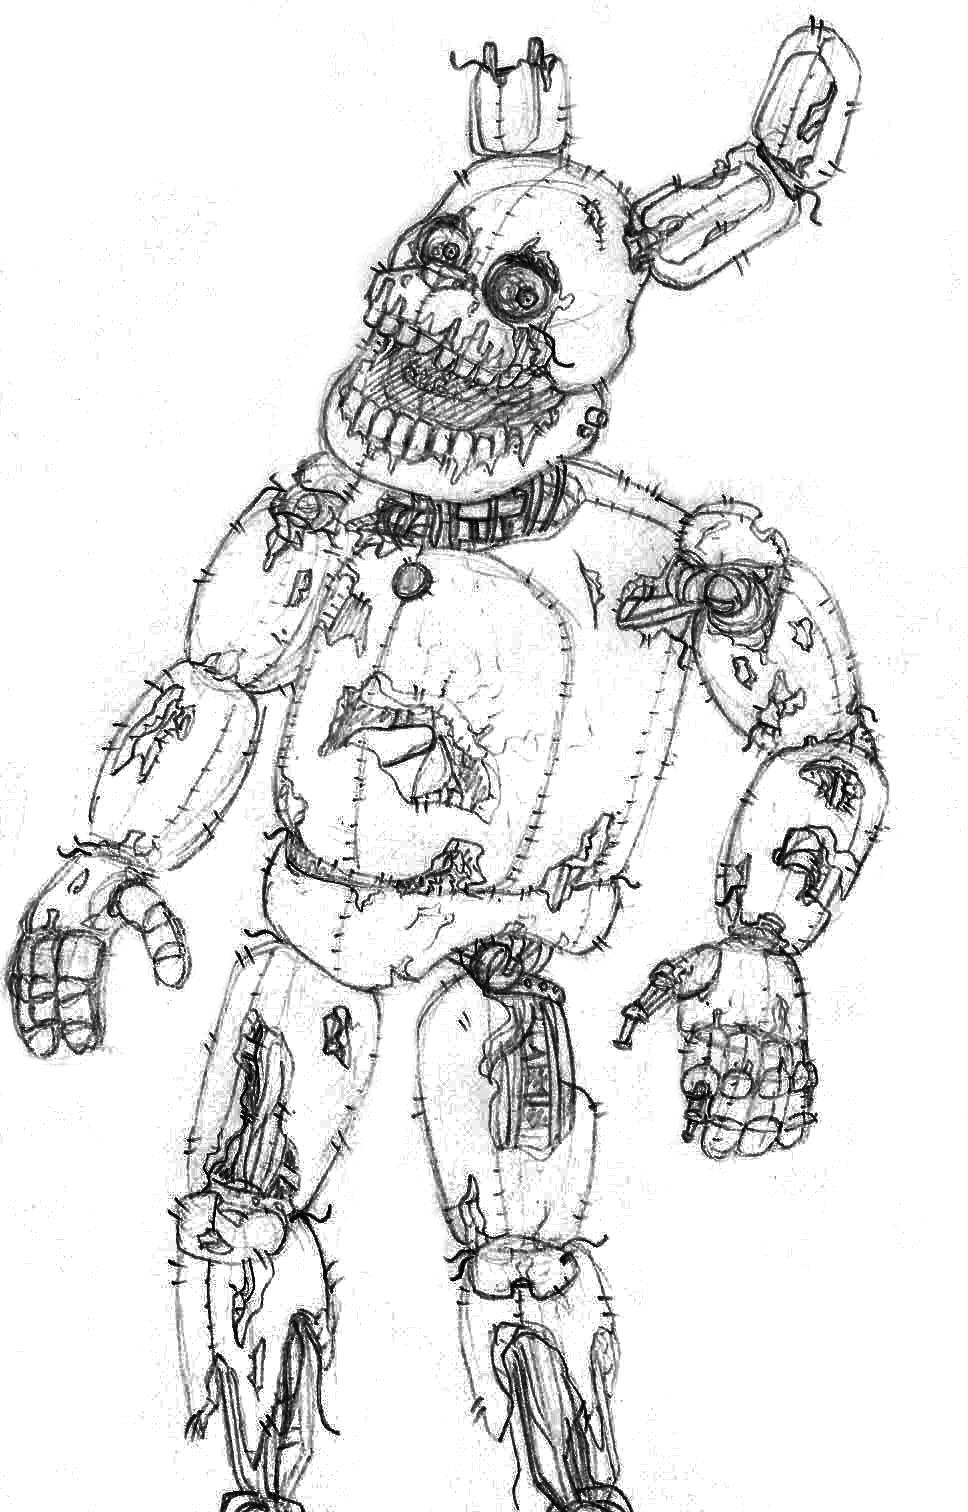 Springtrap Fnaf 6 Coloring Pages Coloring Pages Inspirational Coloring Pages Spring Coloring Pages